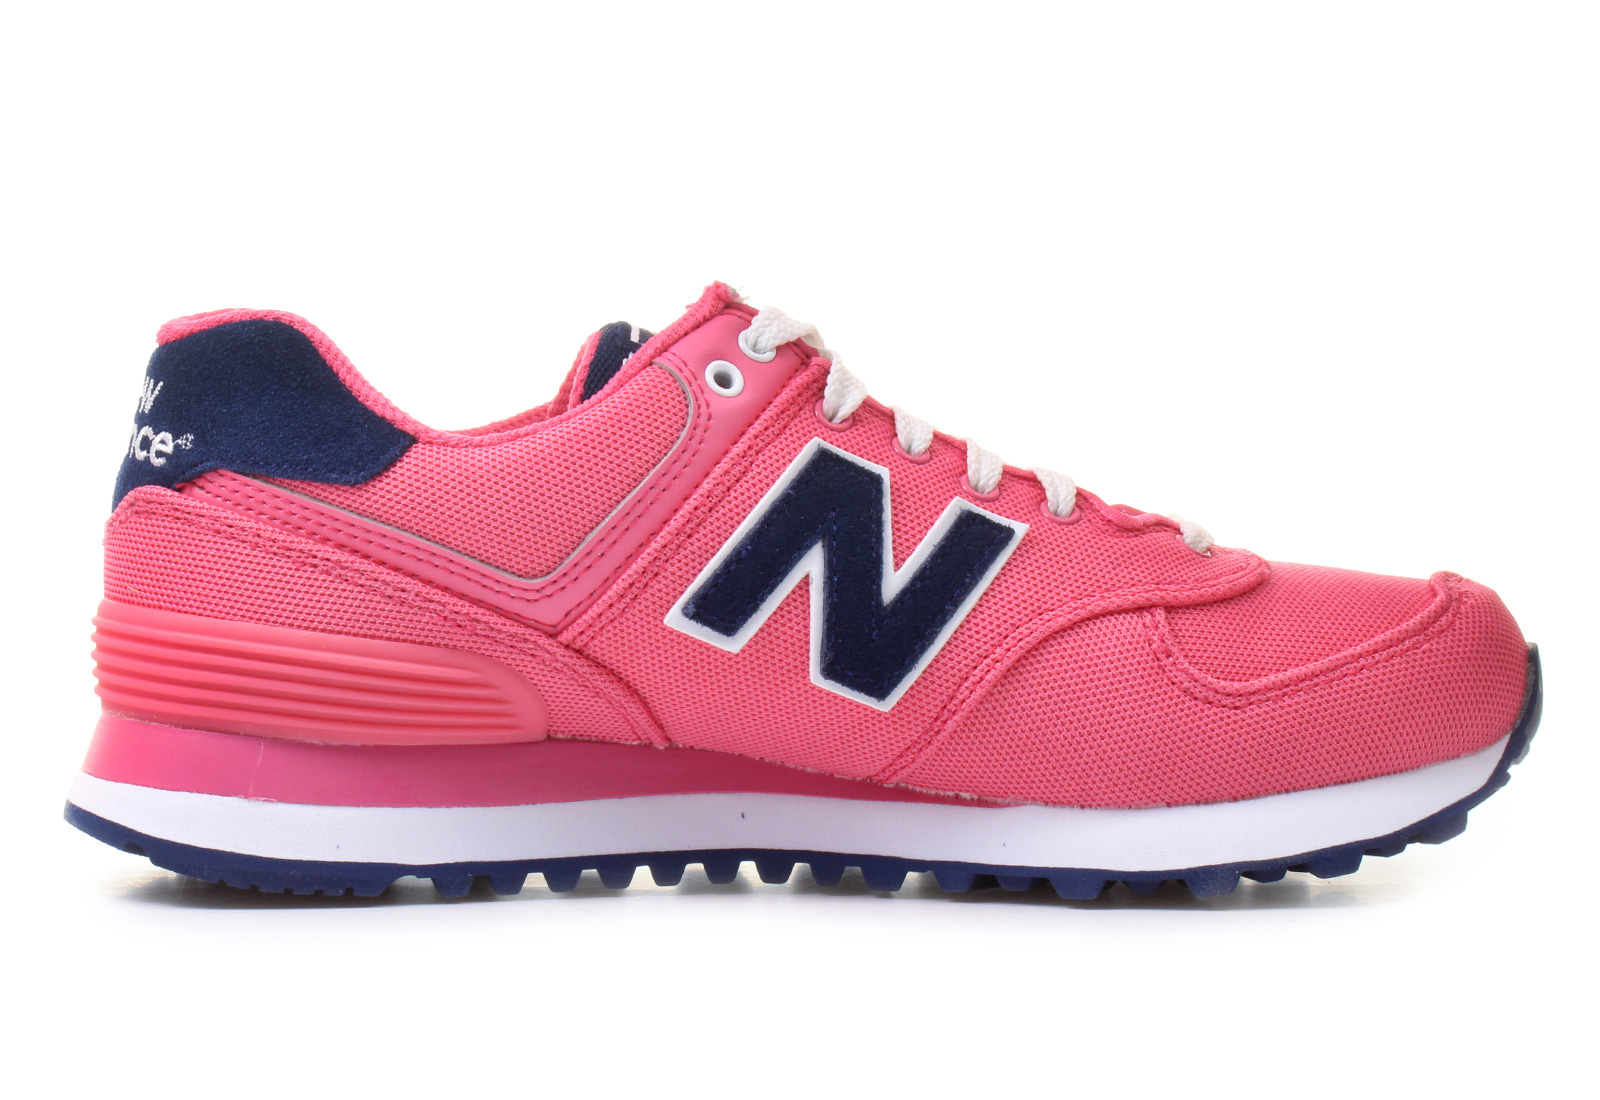 new balance shoes wl574 wl574pop online shop for sneakers shoes and boots. Black Bedroom Furniture Sets. Home Design Ideas